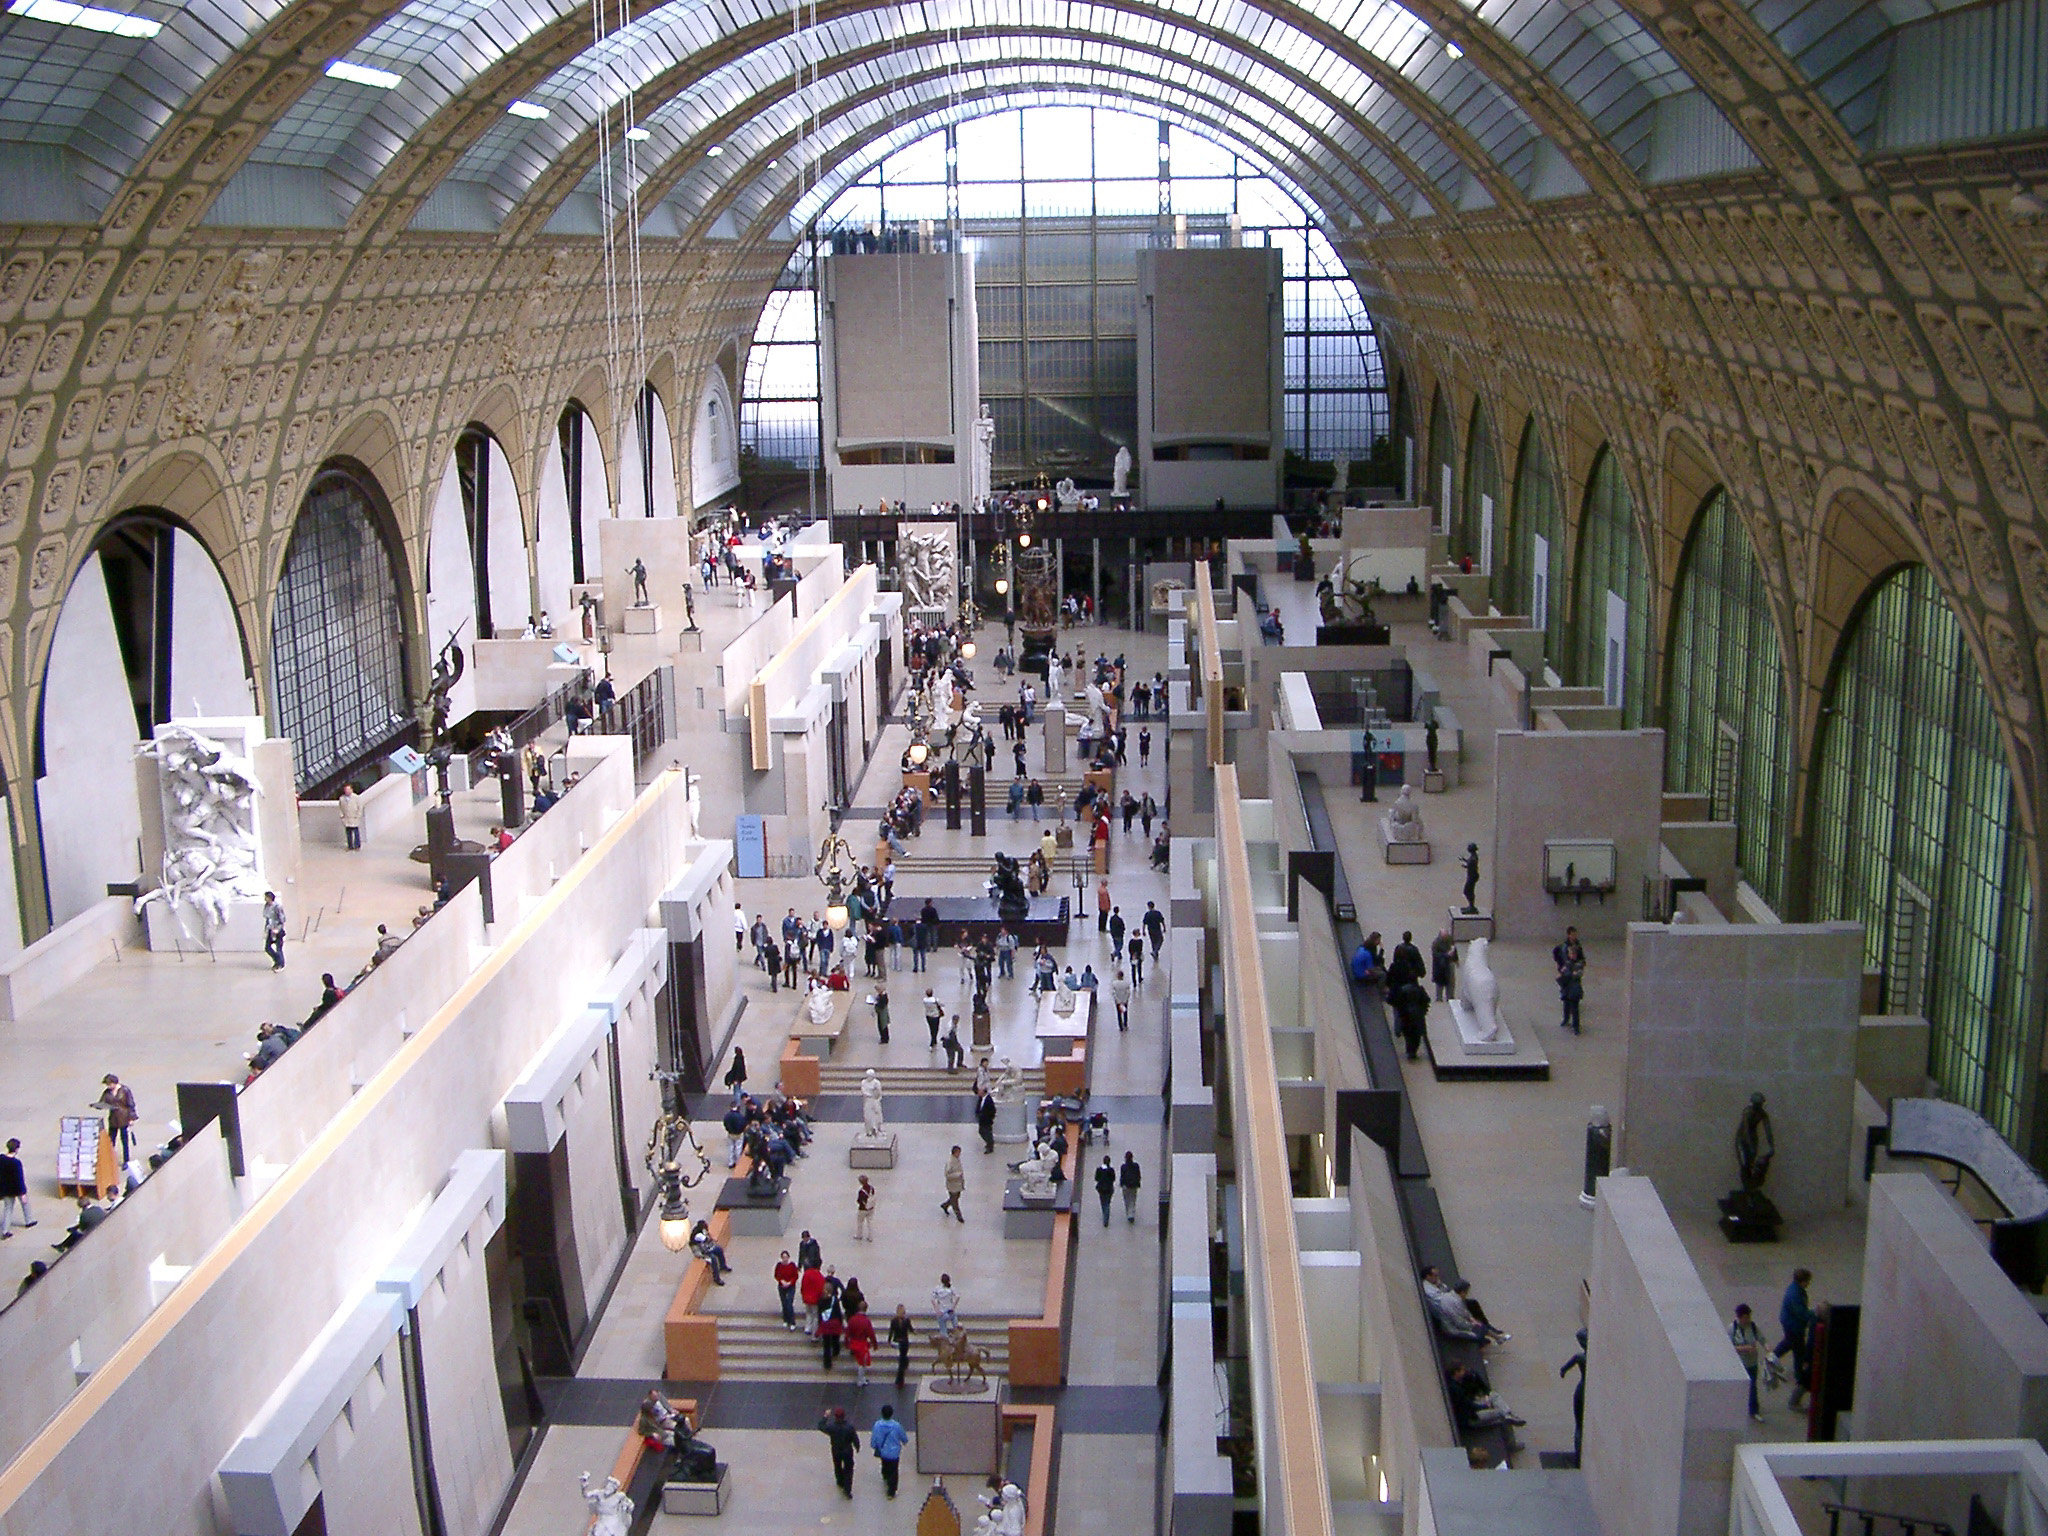 View along the interior central gallery filled with people at the Musee de Orsay, Paris